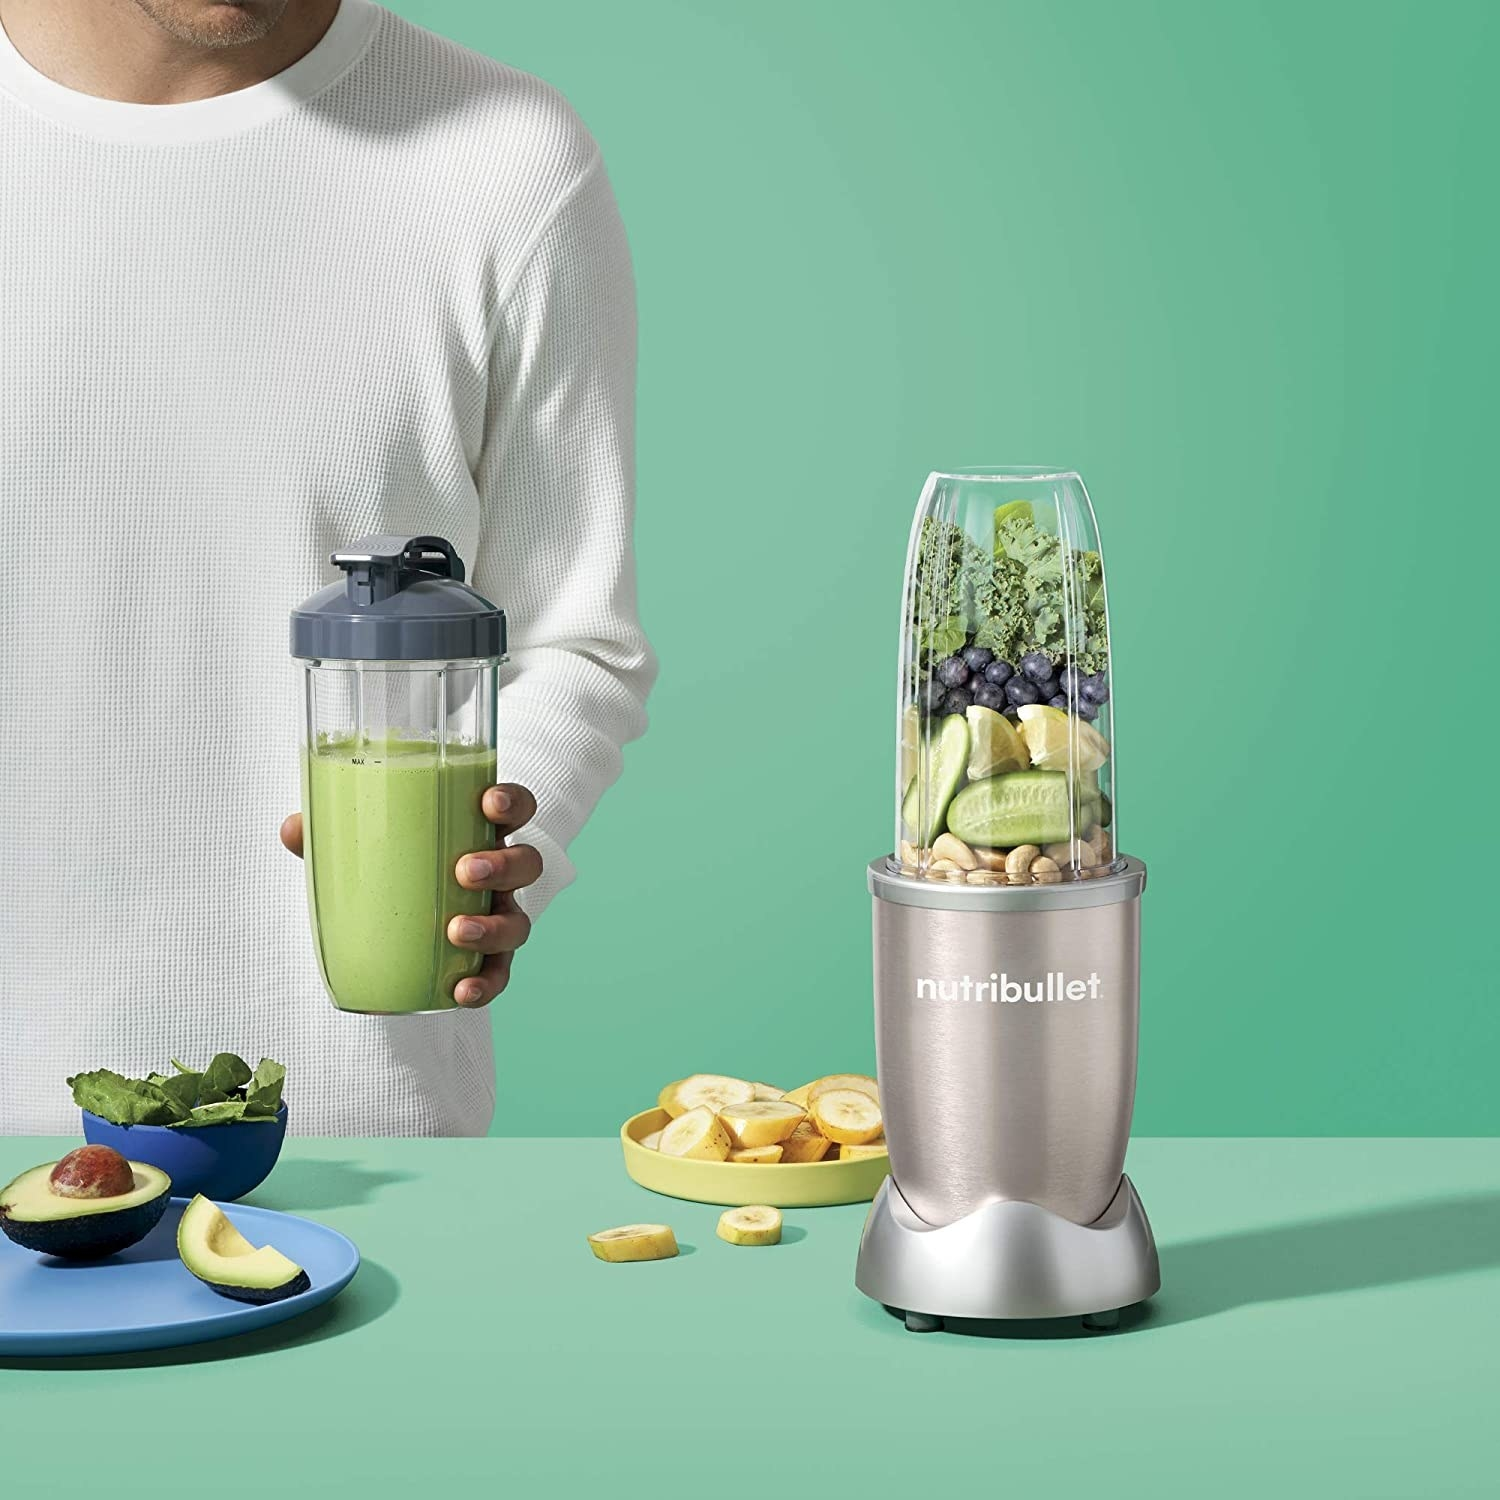 A person holding a kale smoothie next to the Nutribullet